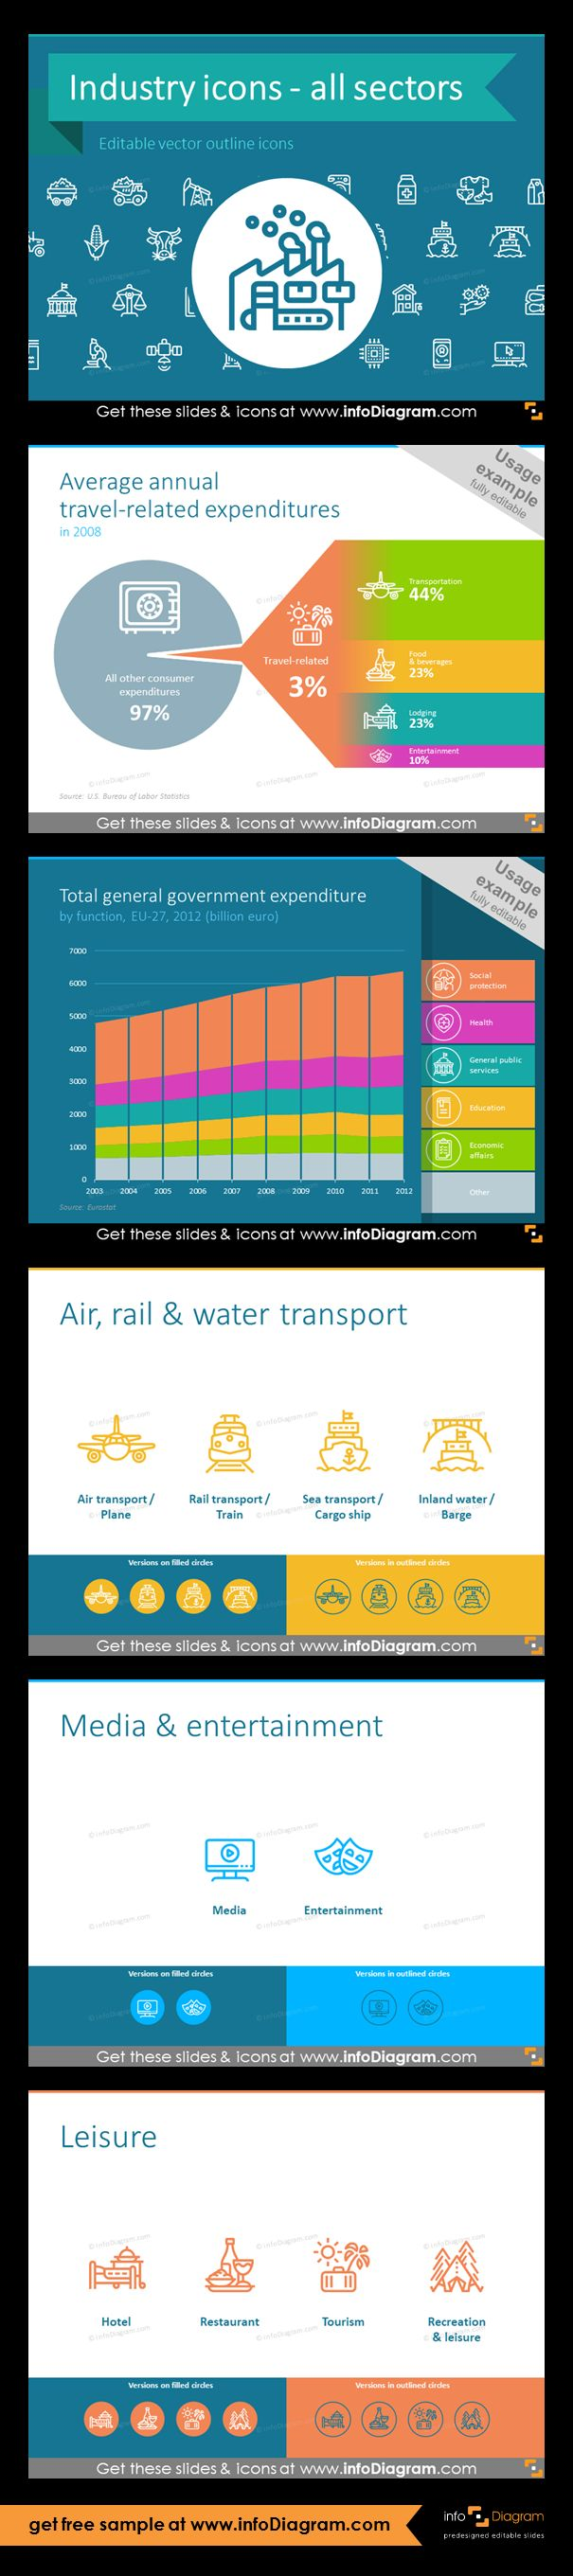 Outlined Industry Symbols for PowerPoint. Bundle of pictograms for visualizing economical and industry-specific topics, including 64 editable icons and 11 infographic examples. Average annual travel-related expenditures; total governmental expenditure. Air, Land, Water transport icons: Air transport, Plane, Rail Transport, Sea transport, Cargo ship, Barge, Inland. Media and entertainment  symbols. Leisure segment icons: Tourism, Restaurant, Hotel, Recreation.